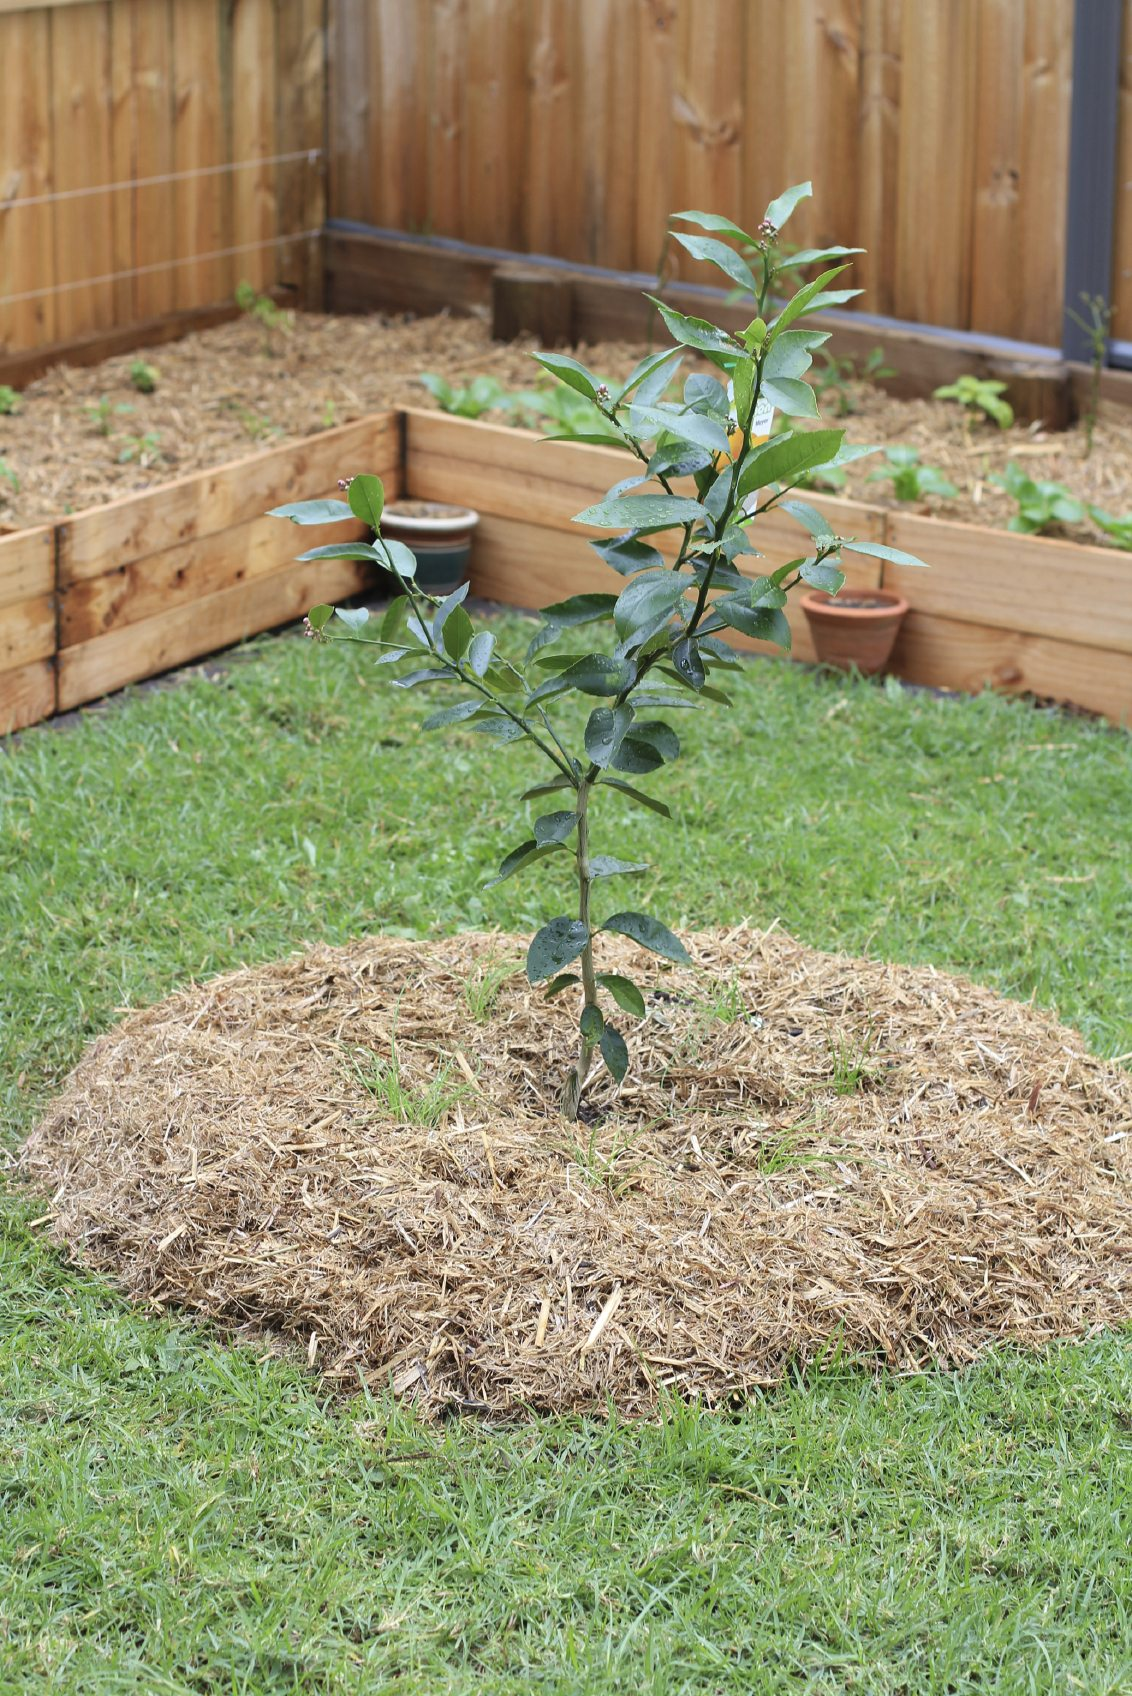 Fruit Trees In Gardens - Ideas For Planting Fruit Trees In ... on Backyard Landscaping Ideas With Trees id=88973